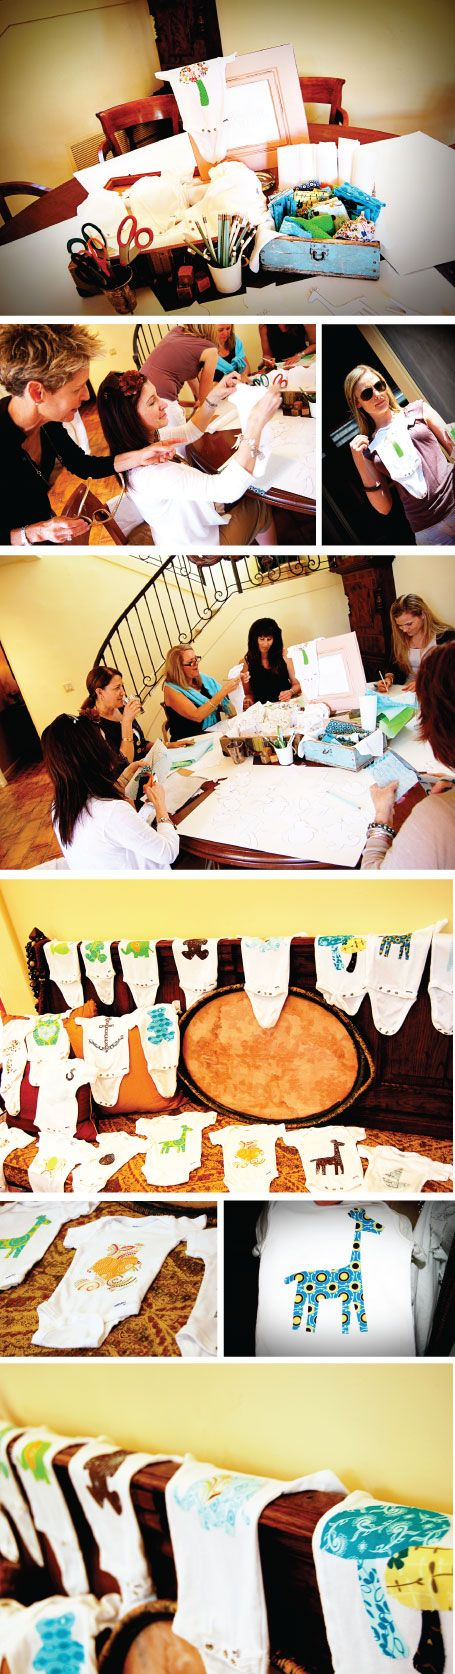 this is the cutest idea ever!  instead of shower games, everyone used cute fabrics, stencils and templates to create their own onesie!